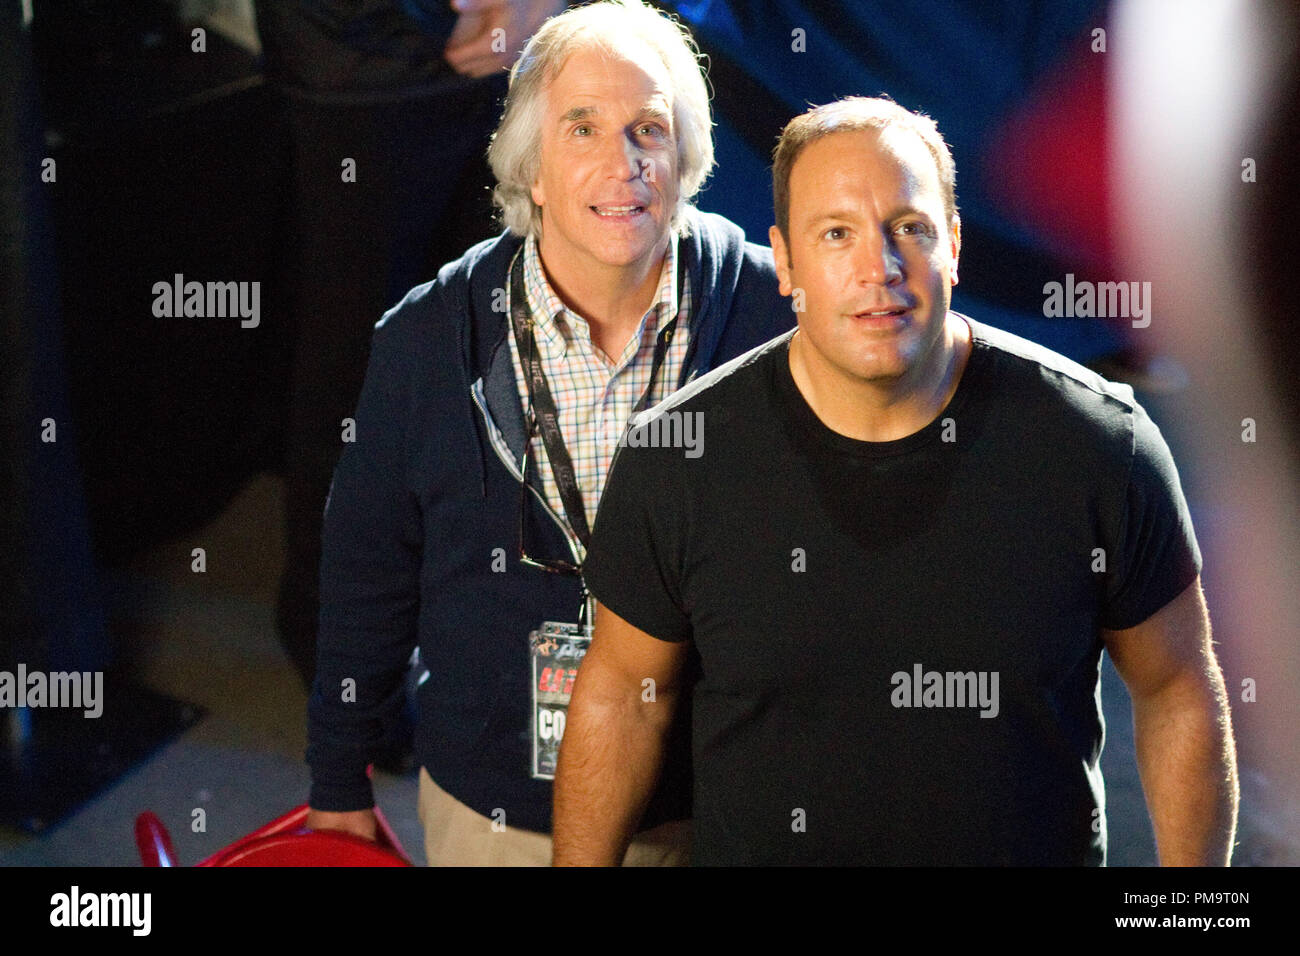 Marty (Henry Winkler) and Scott Voss (Kevin James) are stunned when they see their students' support from the stands in Columbia Pictures' HERE COMES THE BOOM. - Stock Image